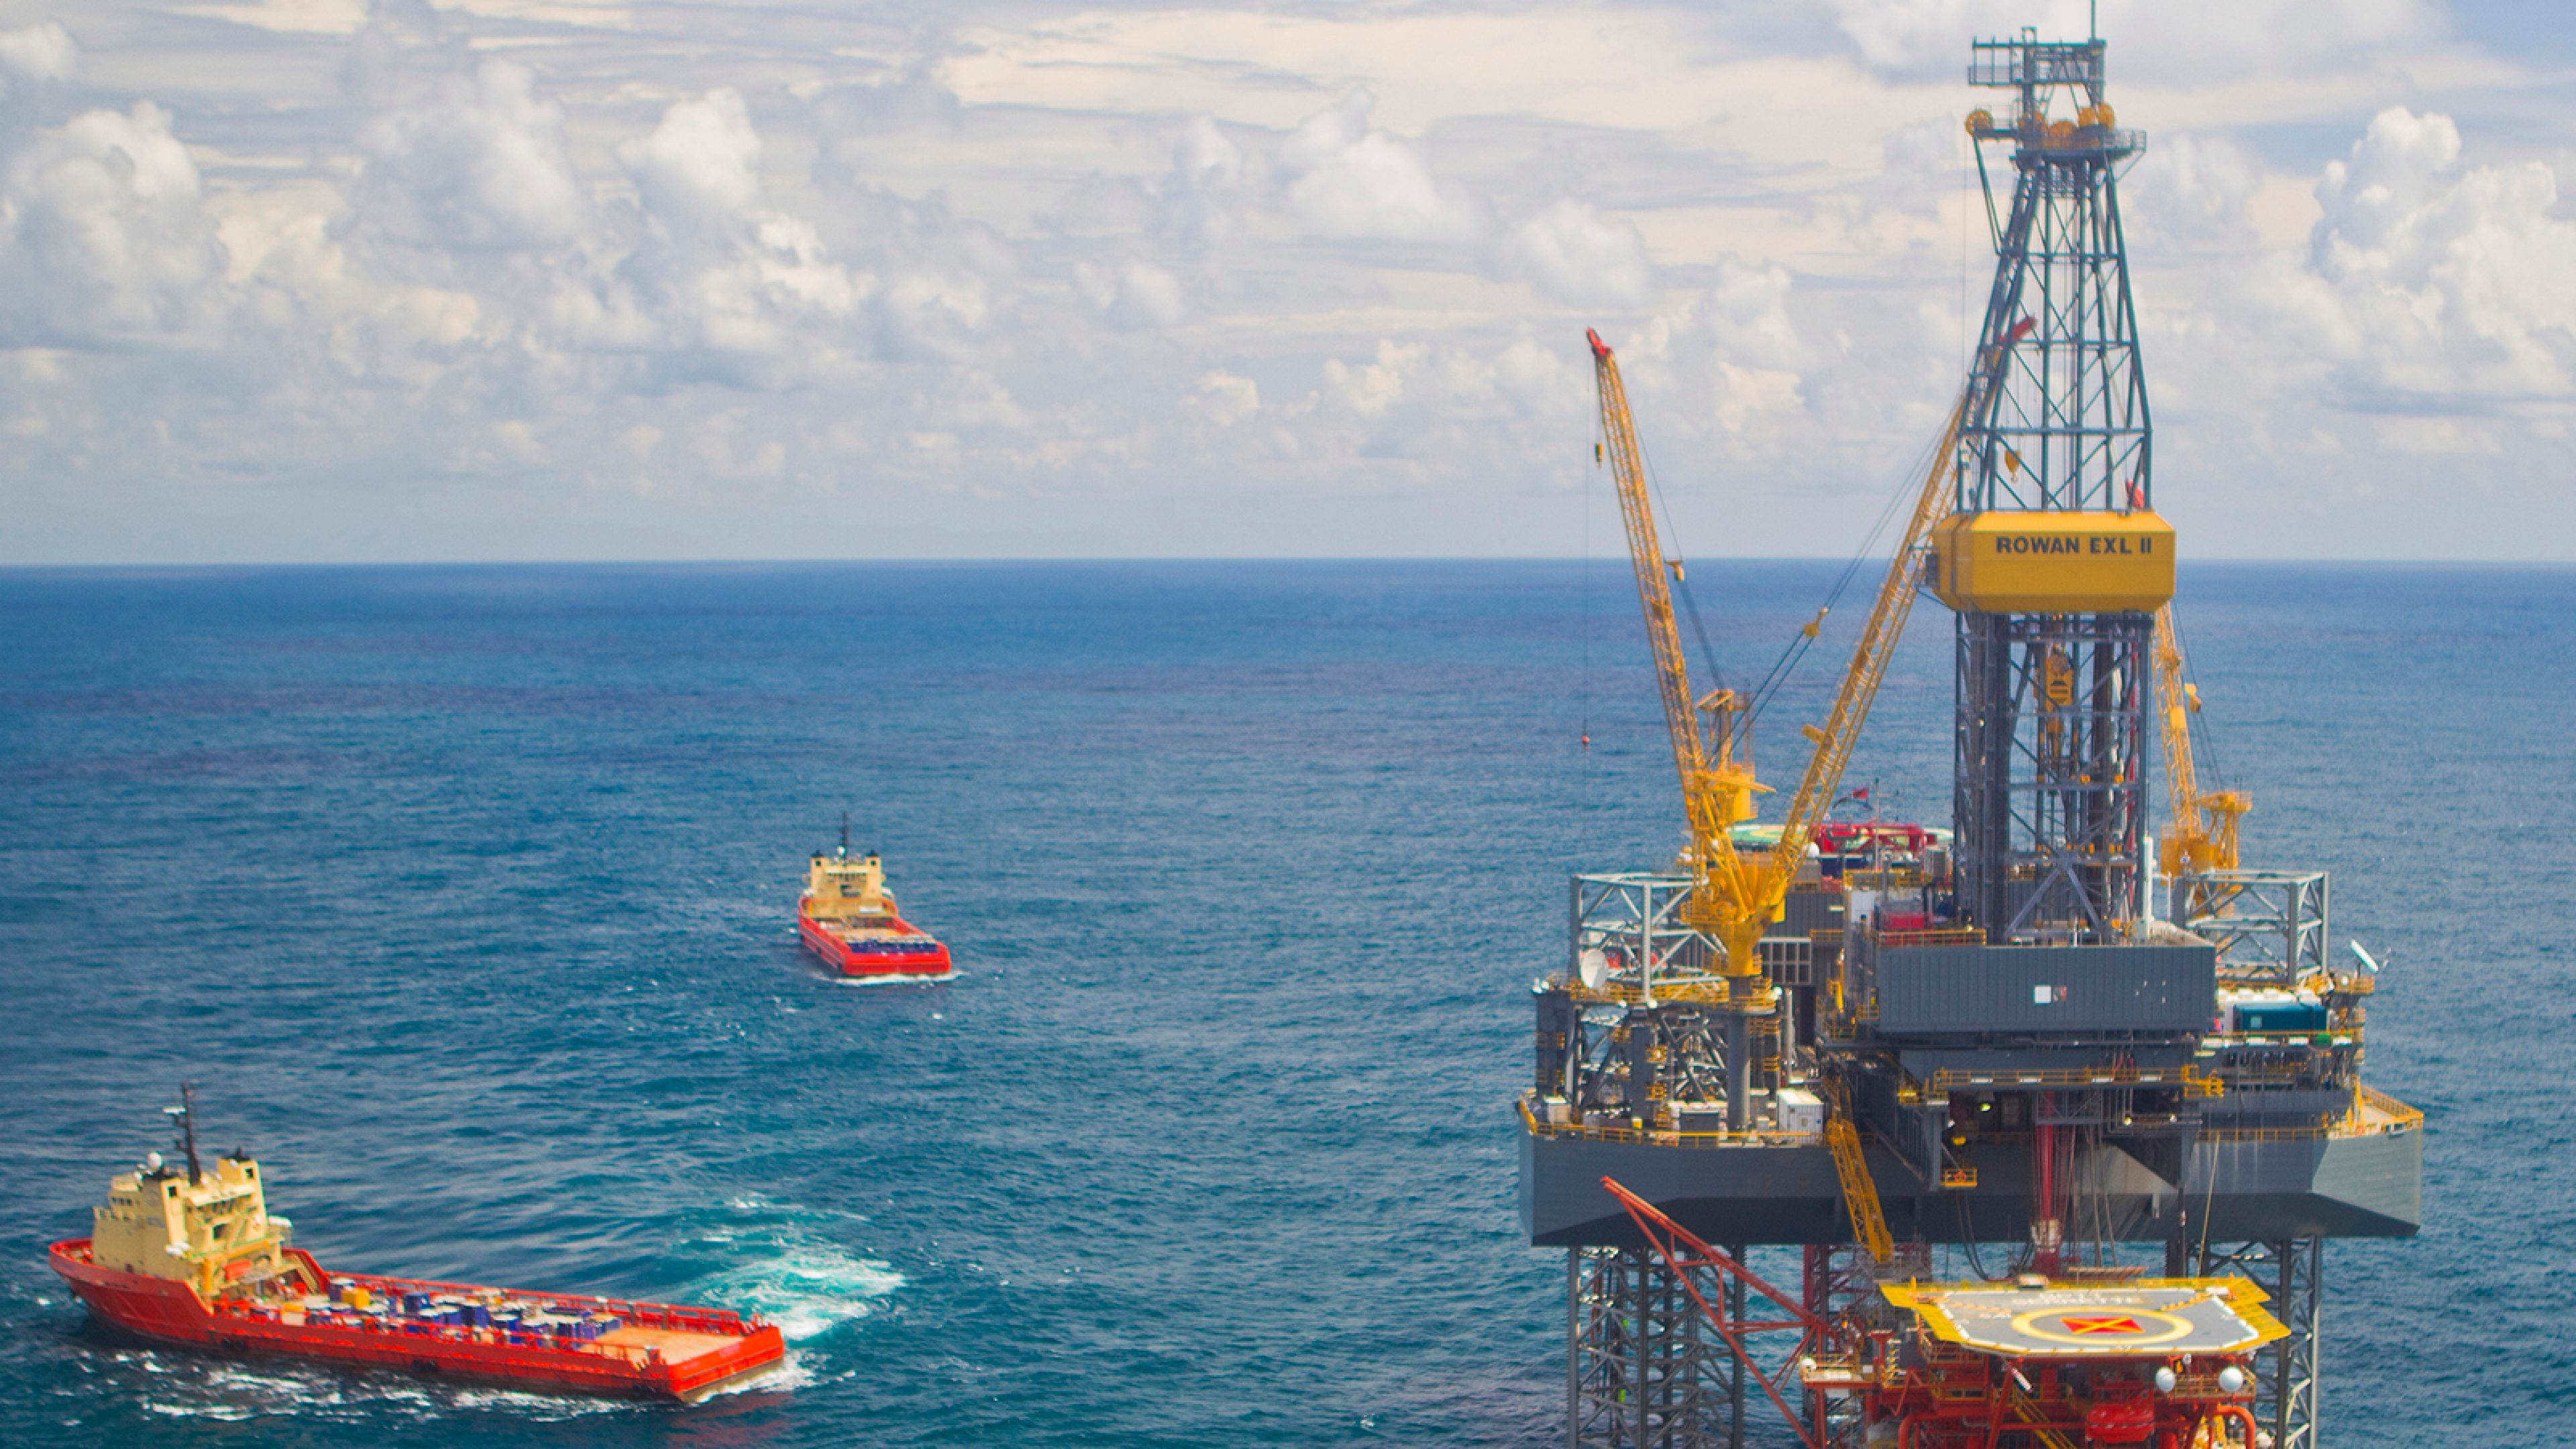 Drill rig and support vessels